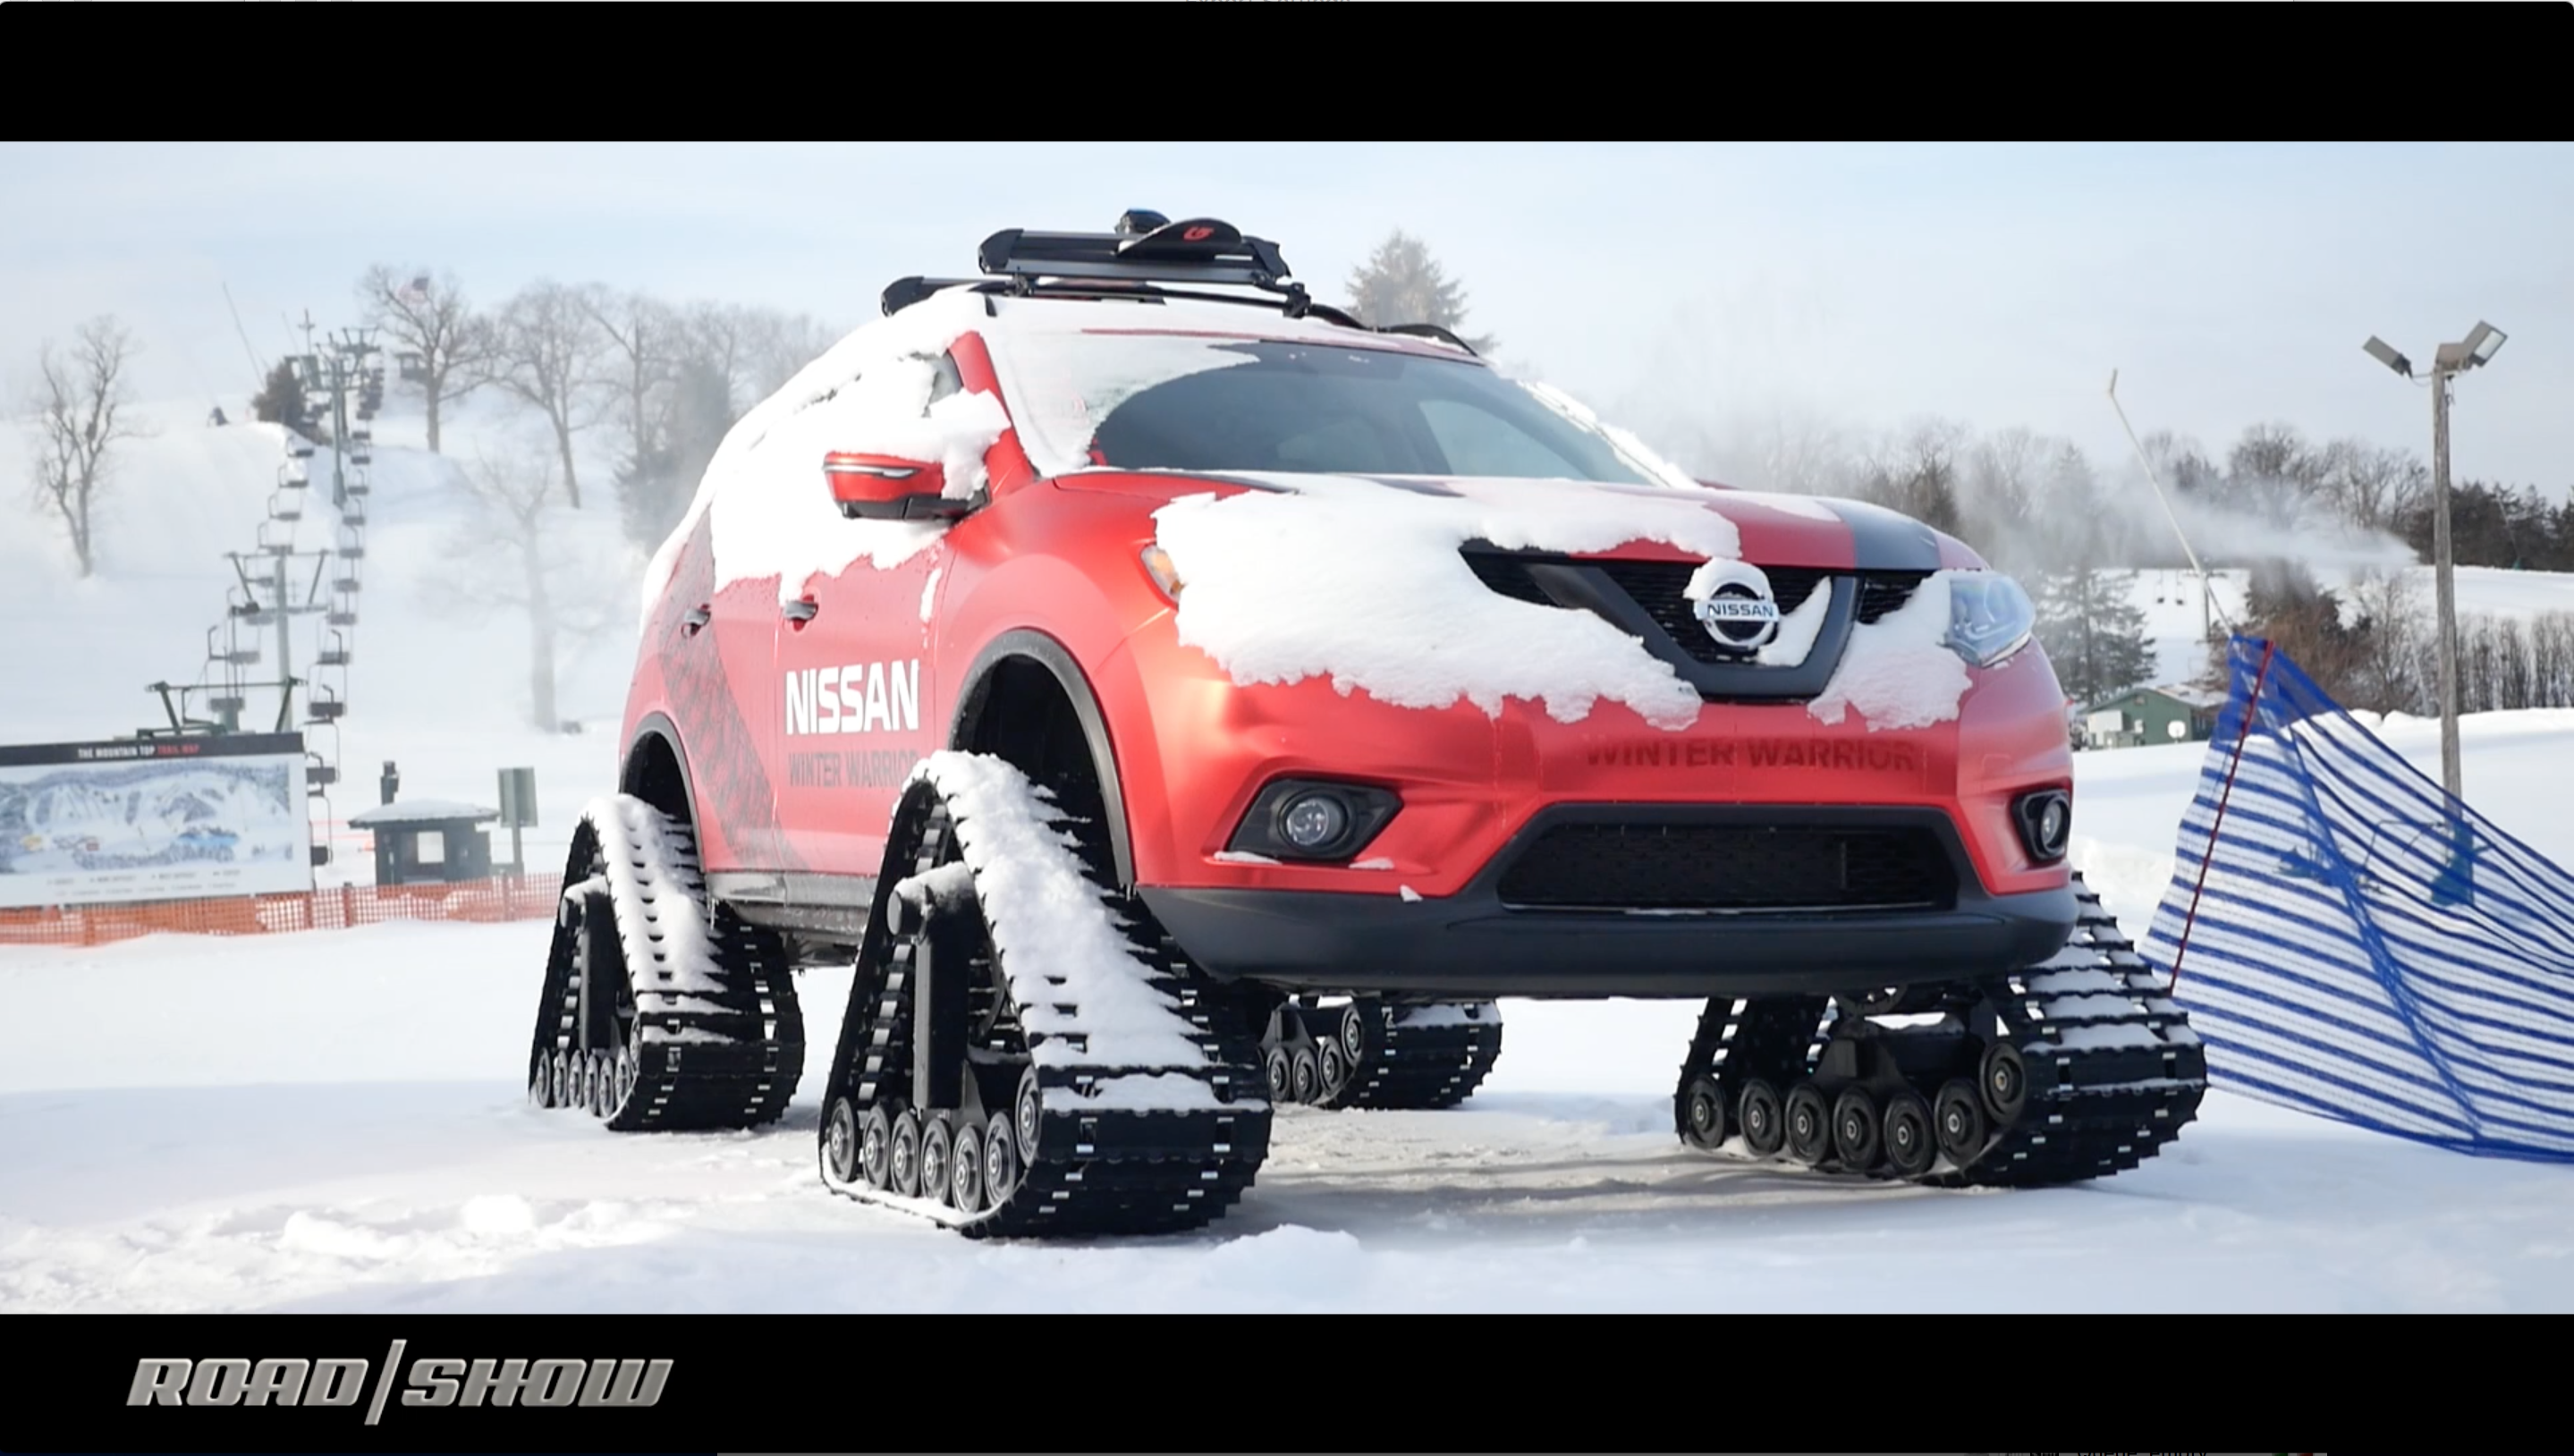 Video: We pummel the powder in Nissan's Winter Warrior concepts